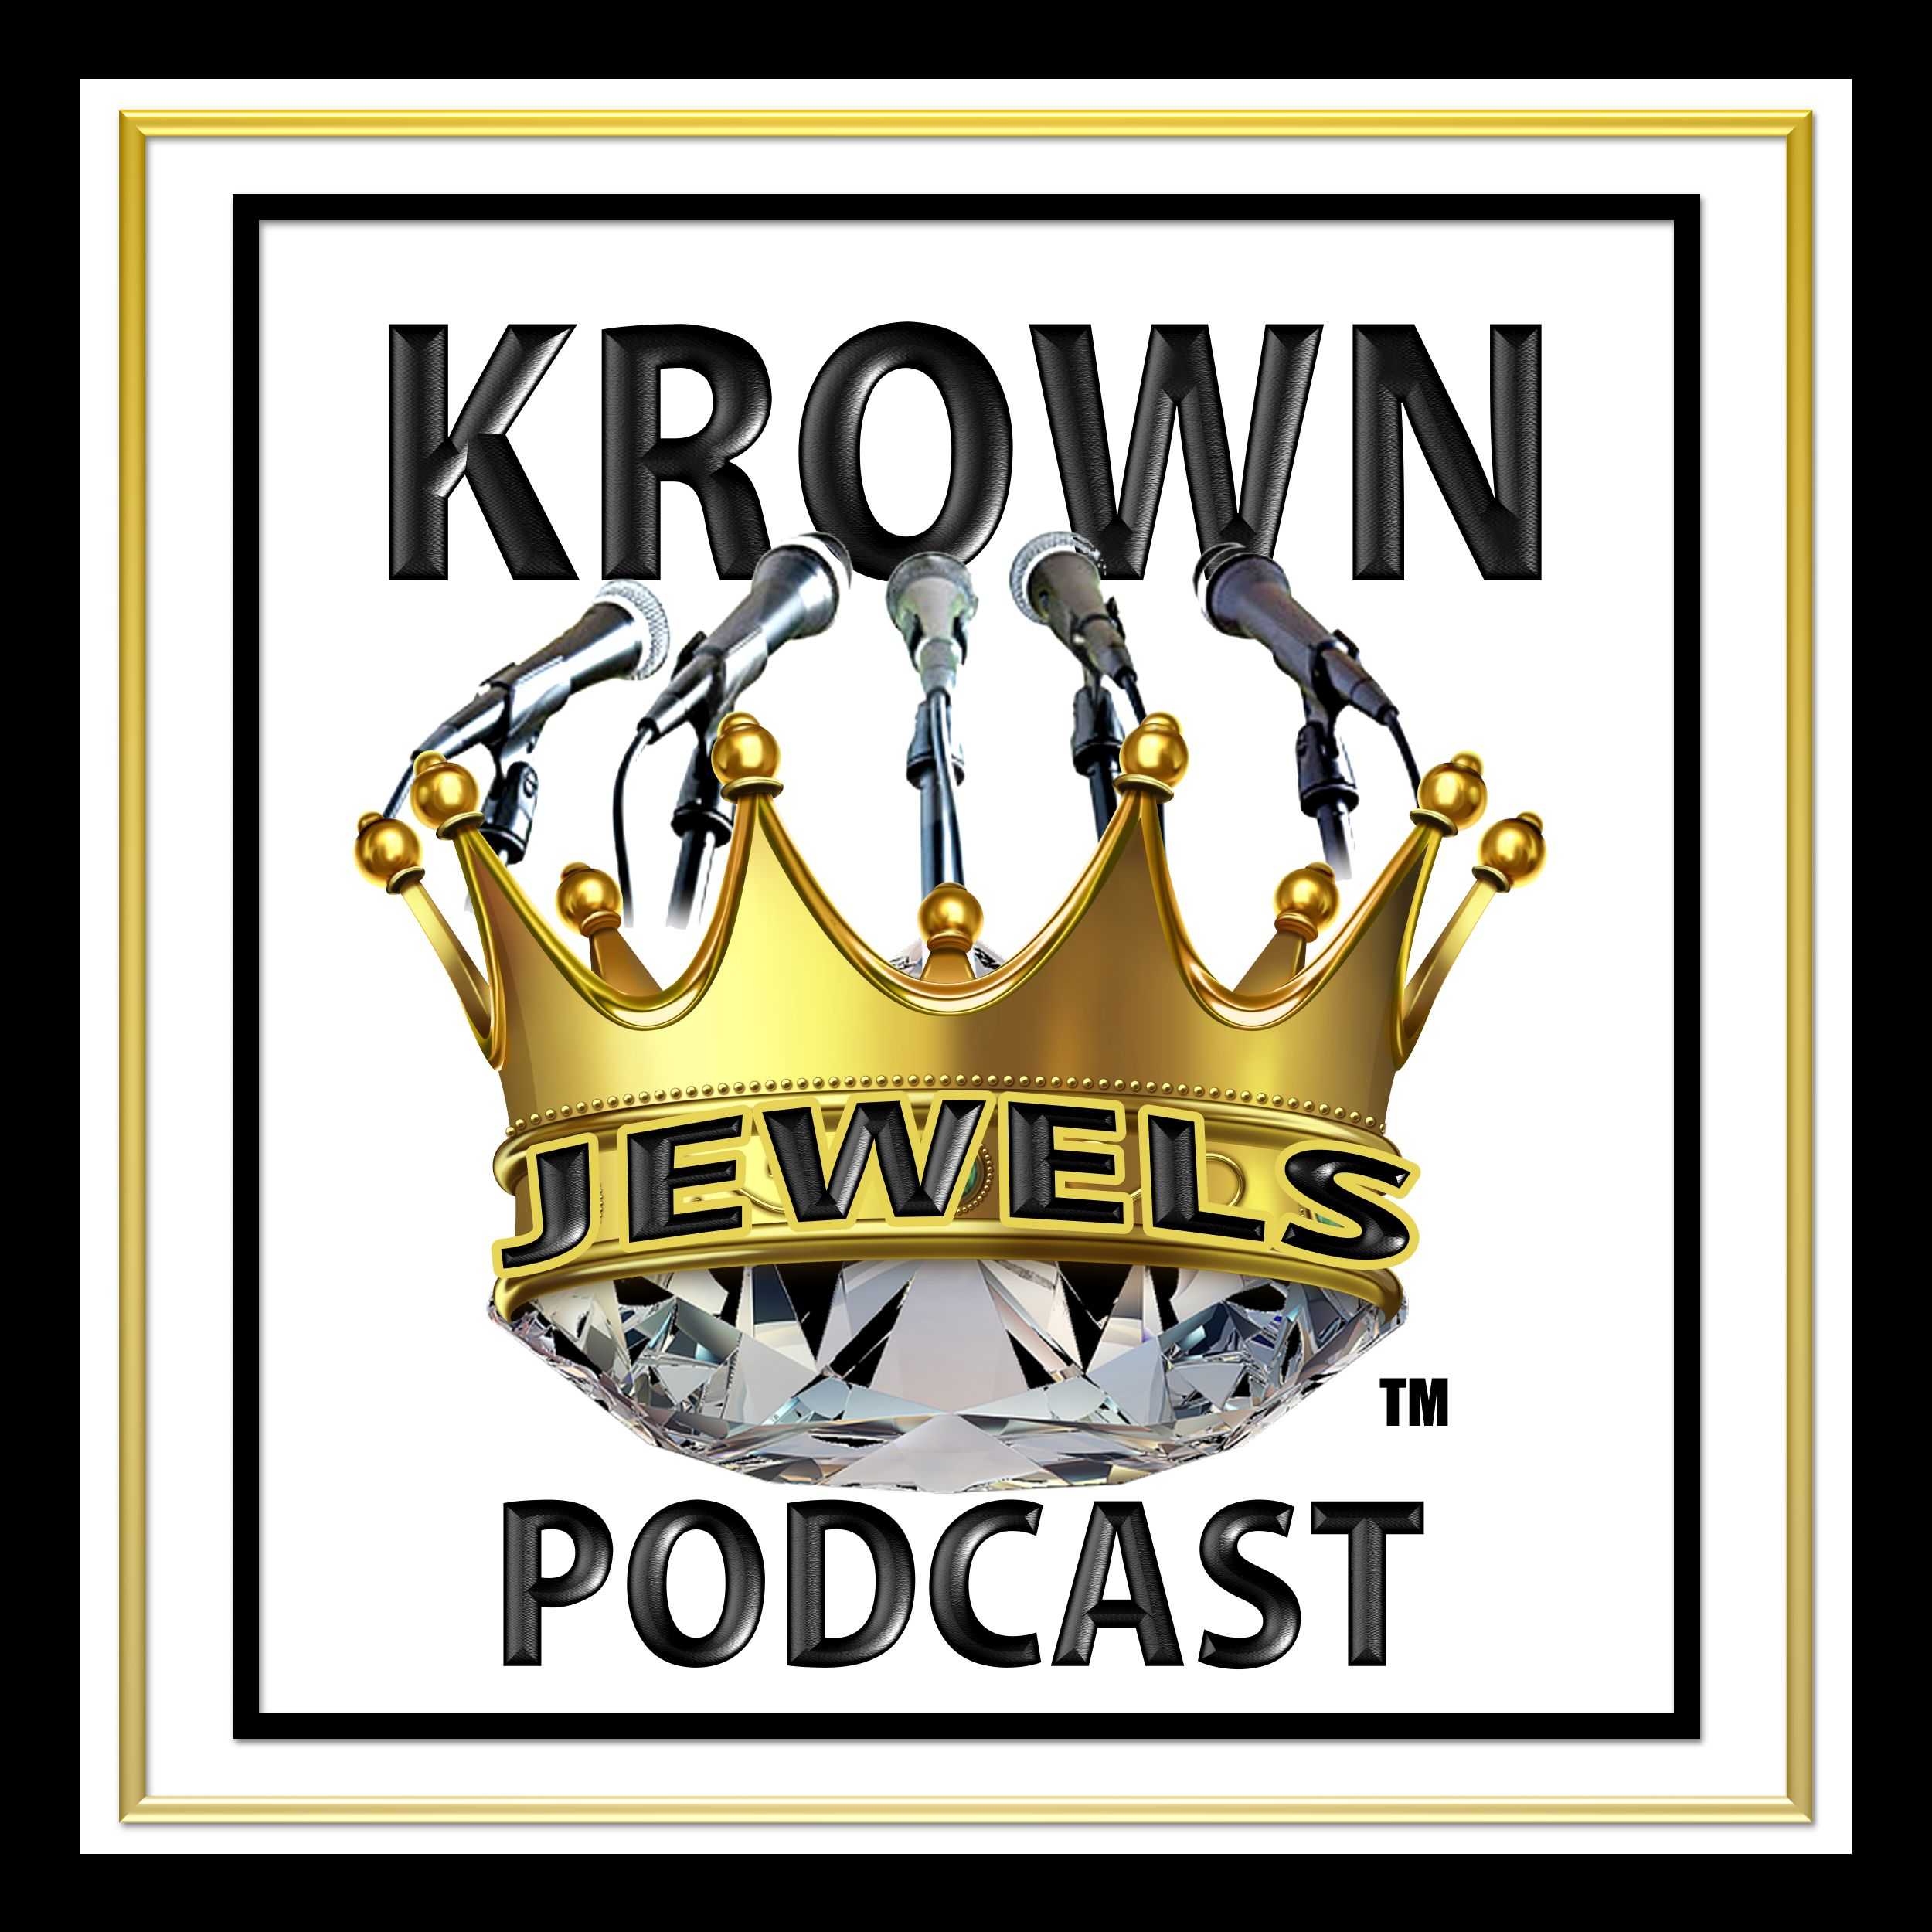 Krown Jewels Podcast